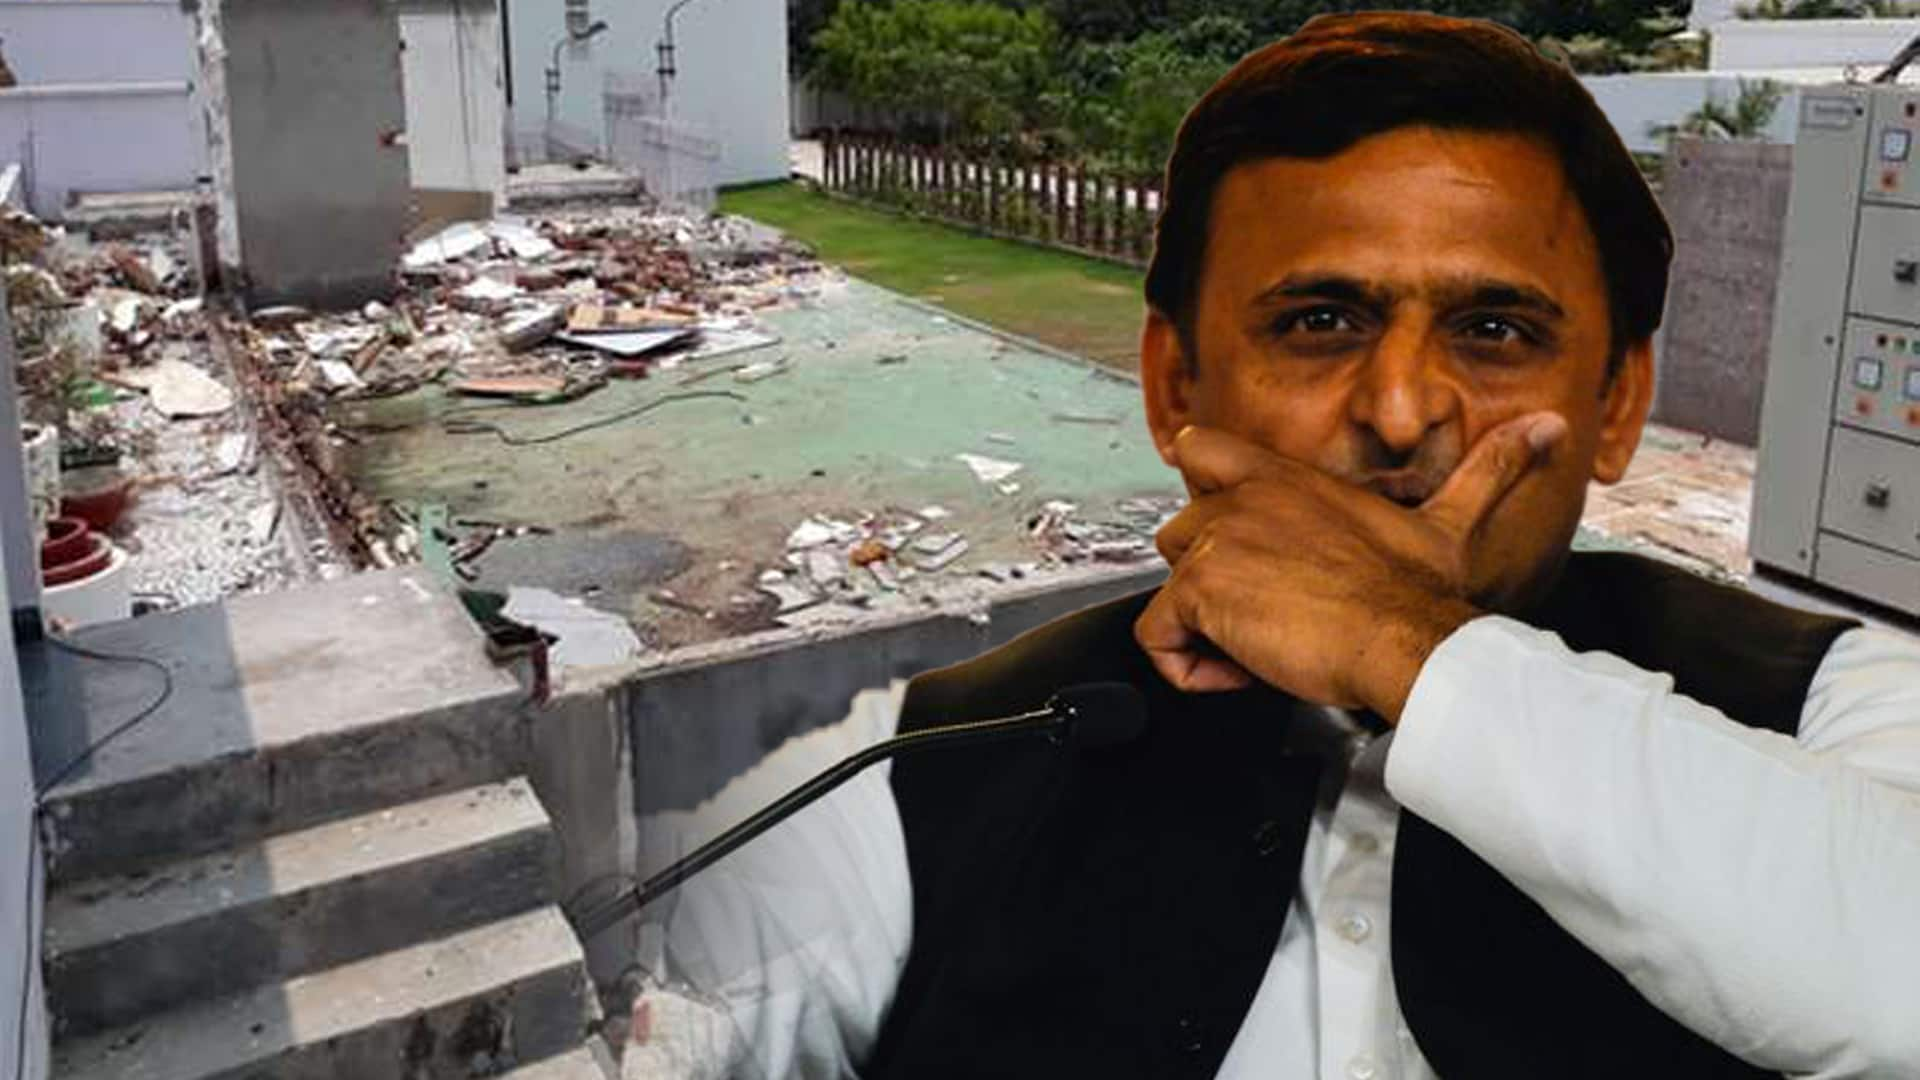 Akhilesh built illegal structure worth over Rs 4.67 crores in govt bungalow